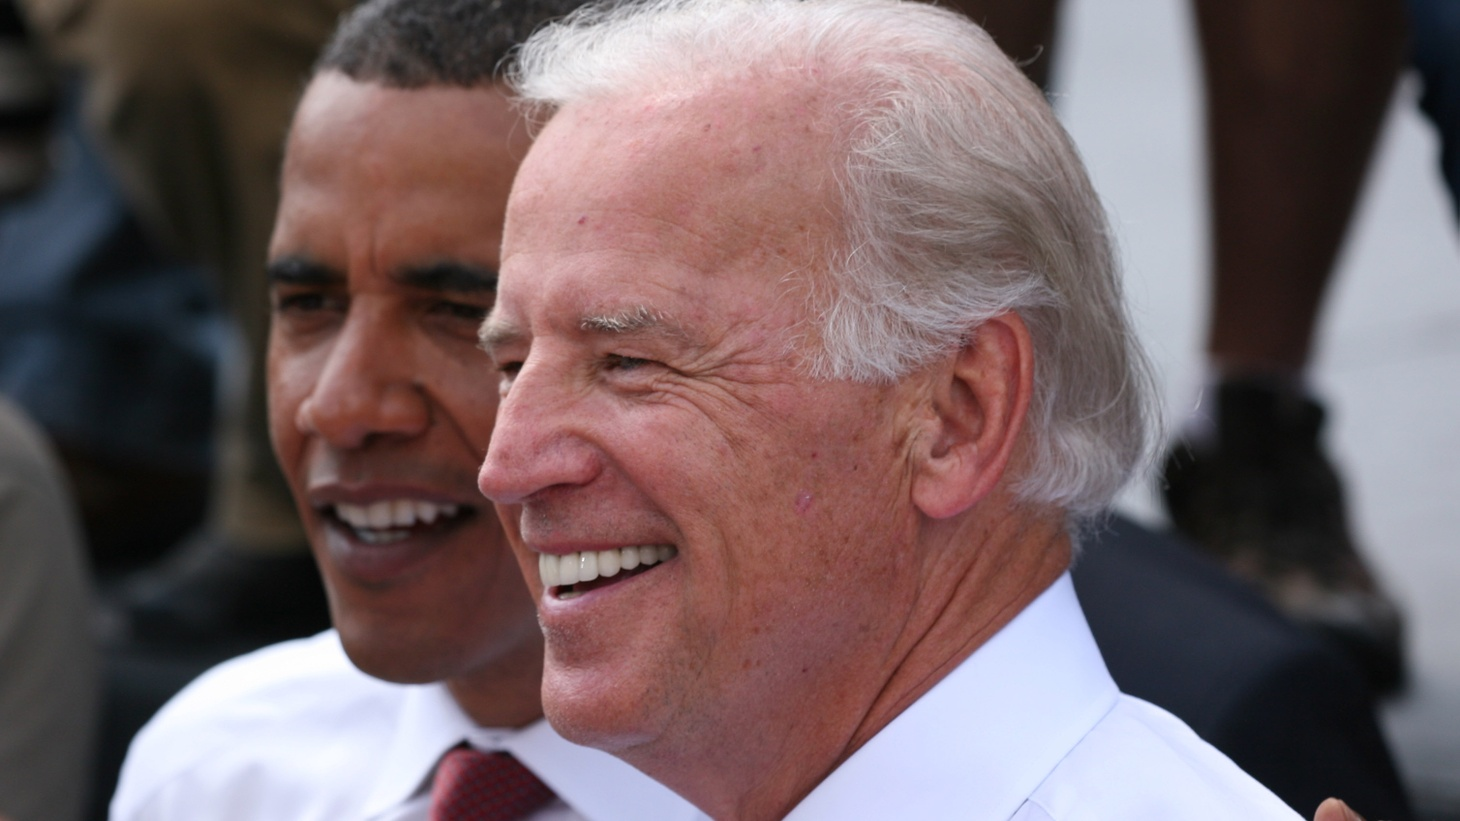 Joe Biden has had to balance his reputation as a gaffe machine with his tasked mission of constructing the administration's foreign policy footprint, especially in reignited hotspots in the Middle East and Ukraine.